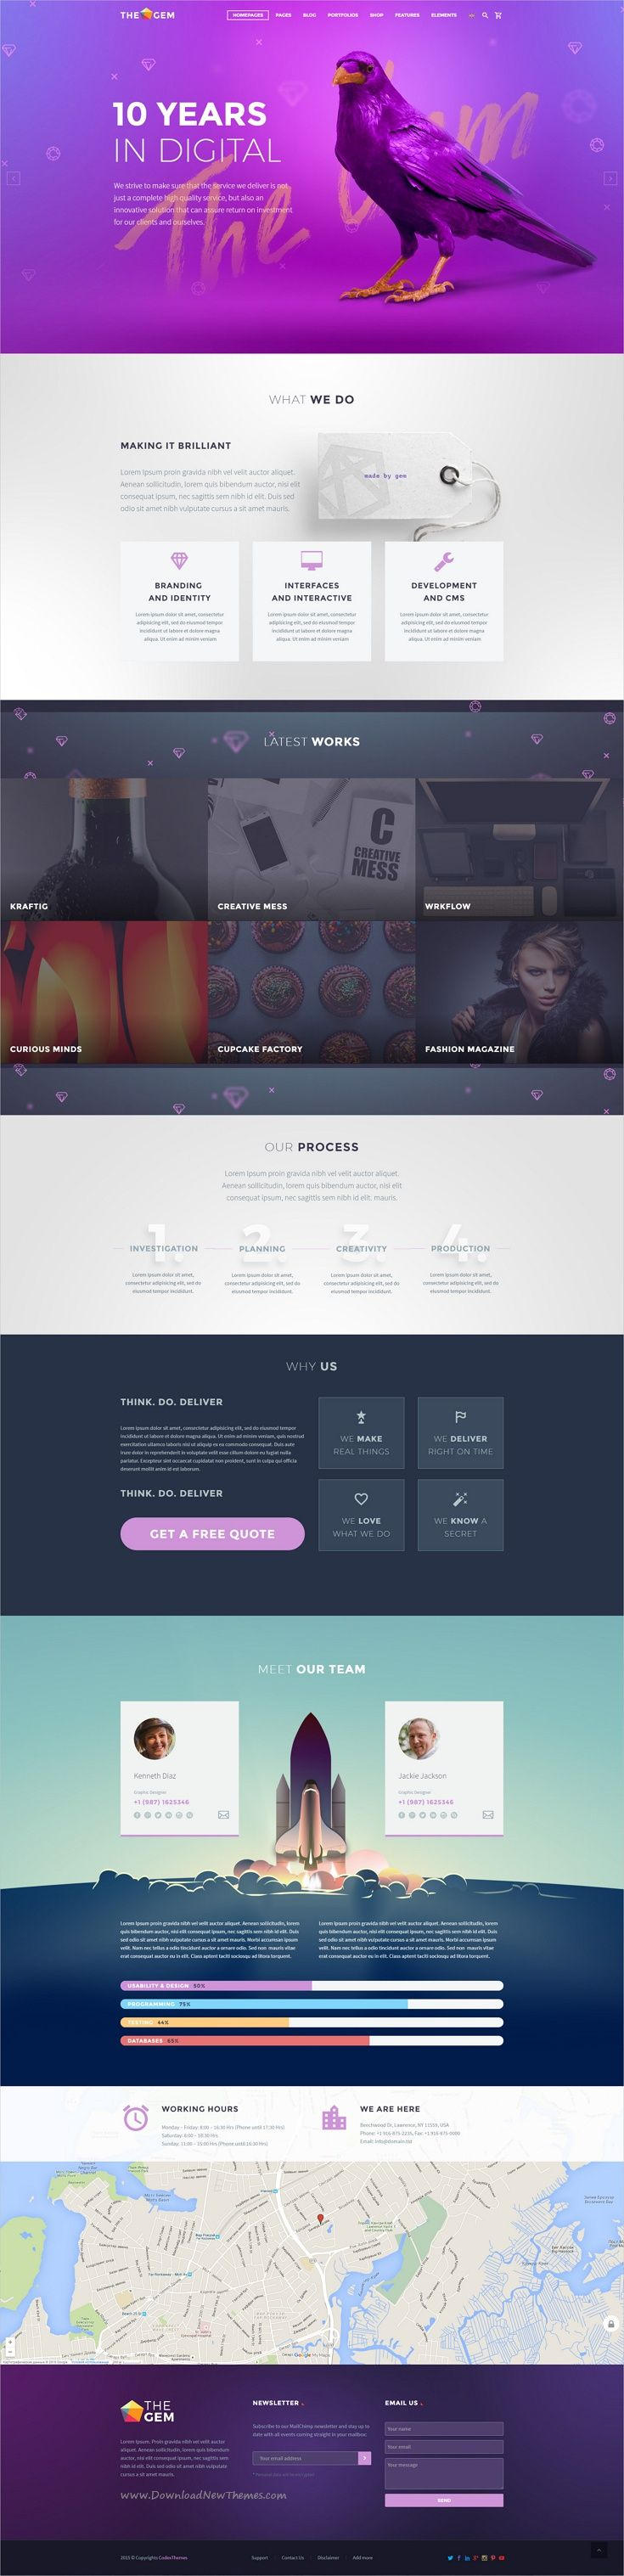 TheGem is creative multipurpose #PSD template for the huge variety of #design & #web projects with 50+ awesome homepage layouts & 200+ layered PSD files download now➩ https://themeforest.net/item/thegem-creative-multipurpose-psd-template/19746346?ref=Datasata